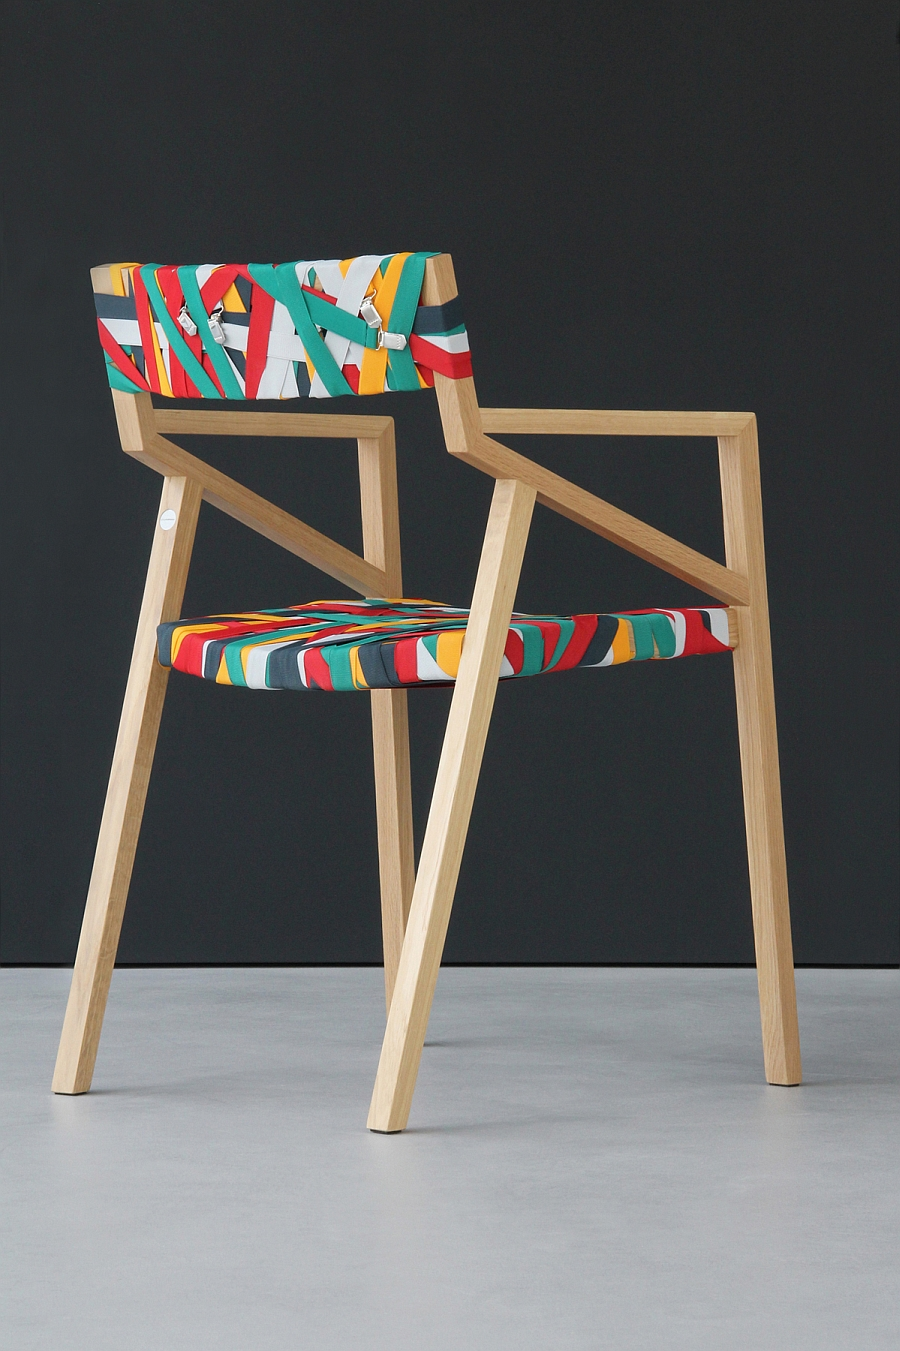 Design Stuhl Trendy Minimalist Wood Chair Wrapped In Multicolored